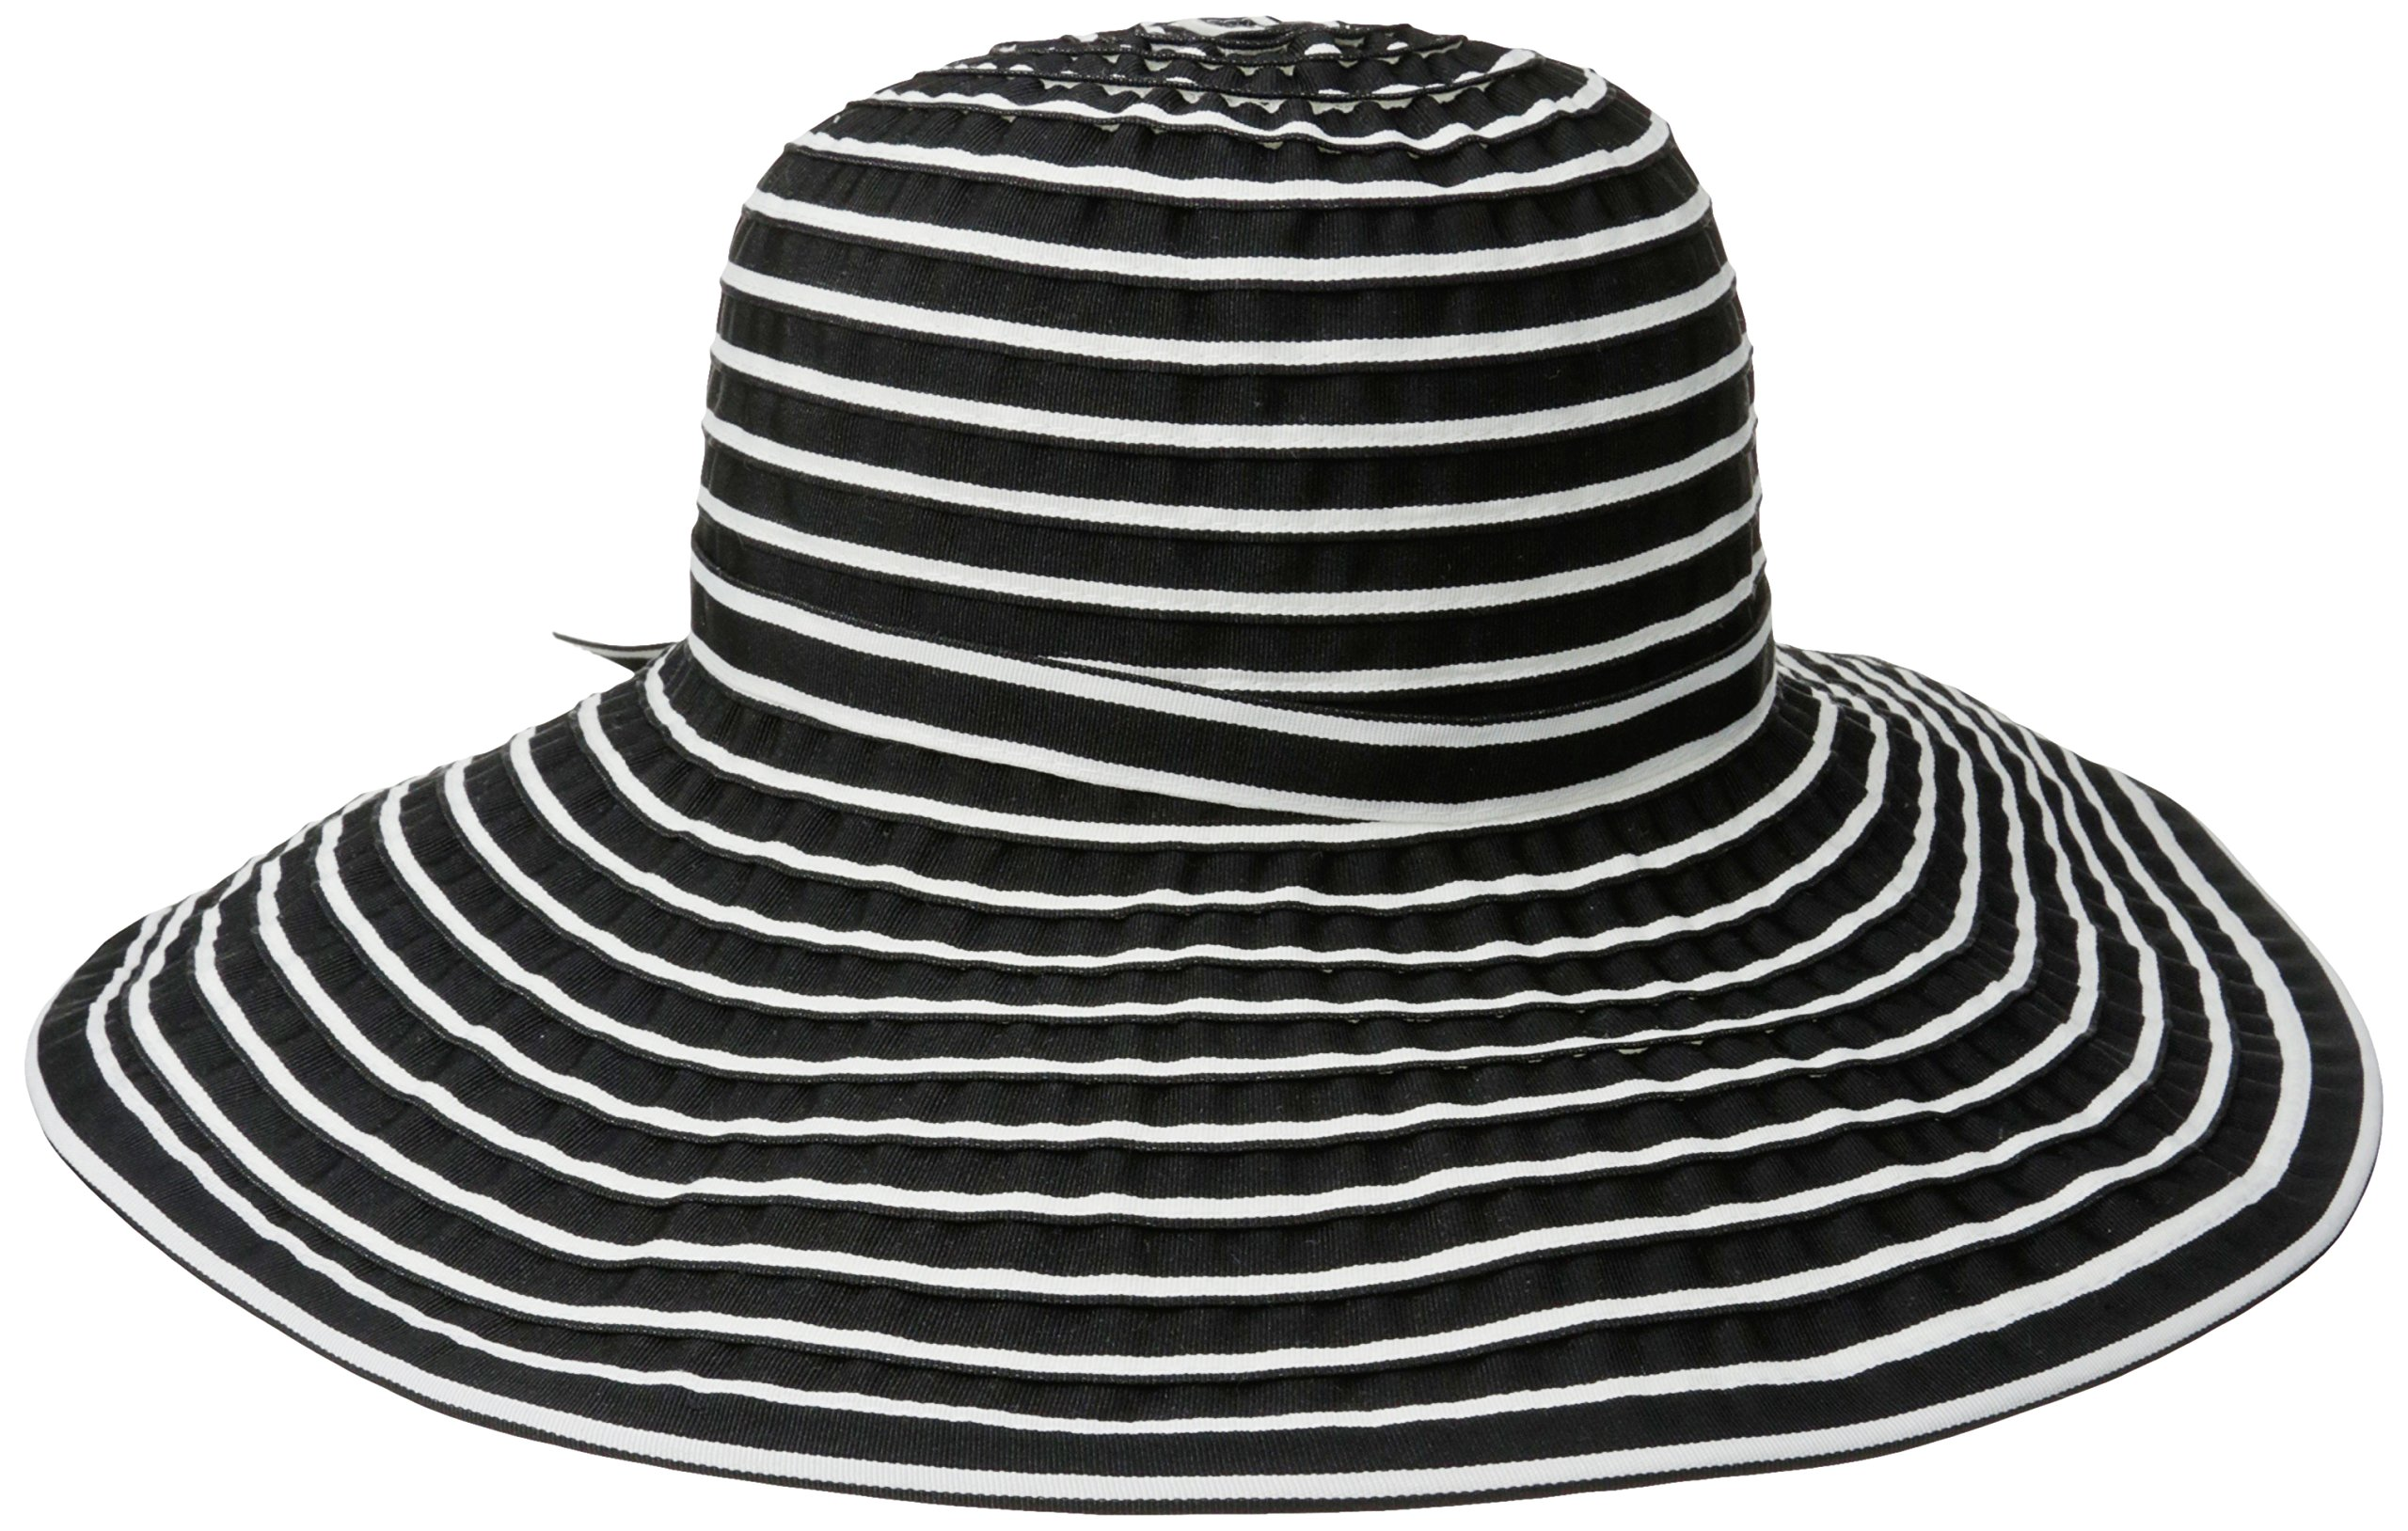 San Diego Hat Hats Hat - Black/White - One